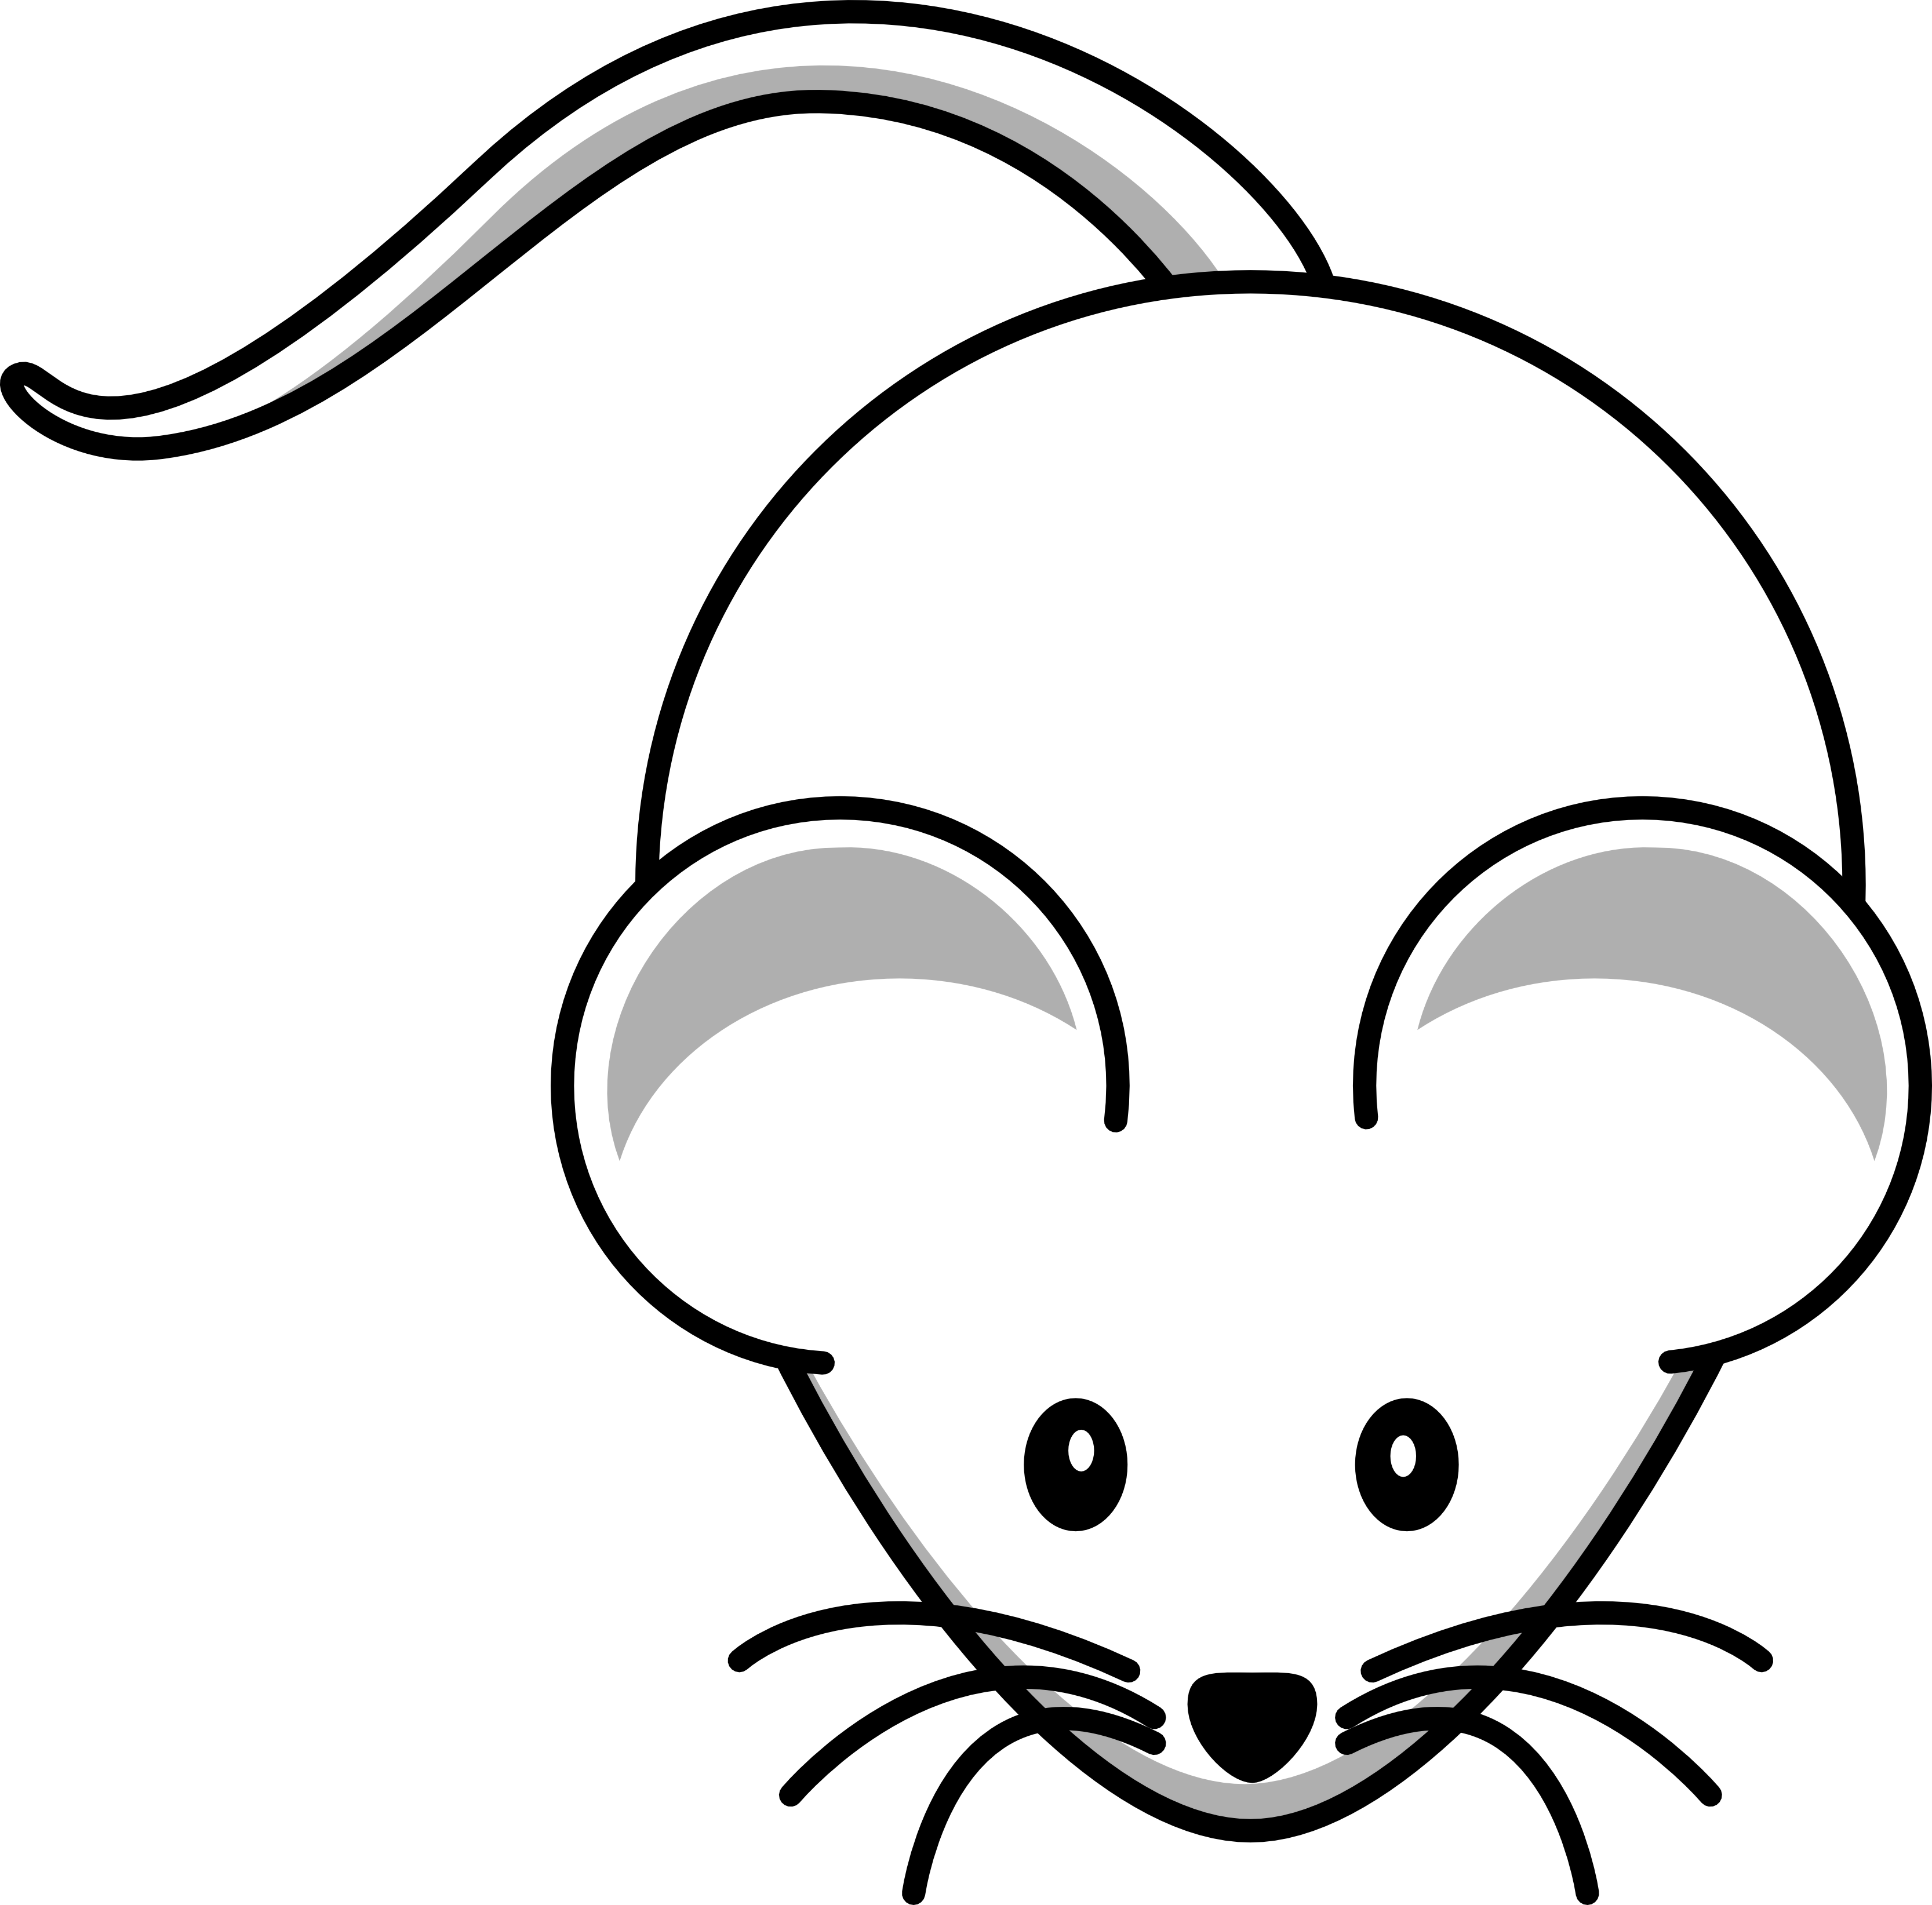 Clipart mouse black and white. Computer free on dumielauxepices